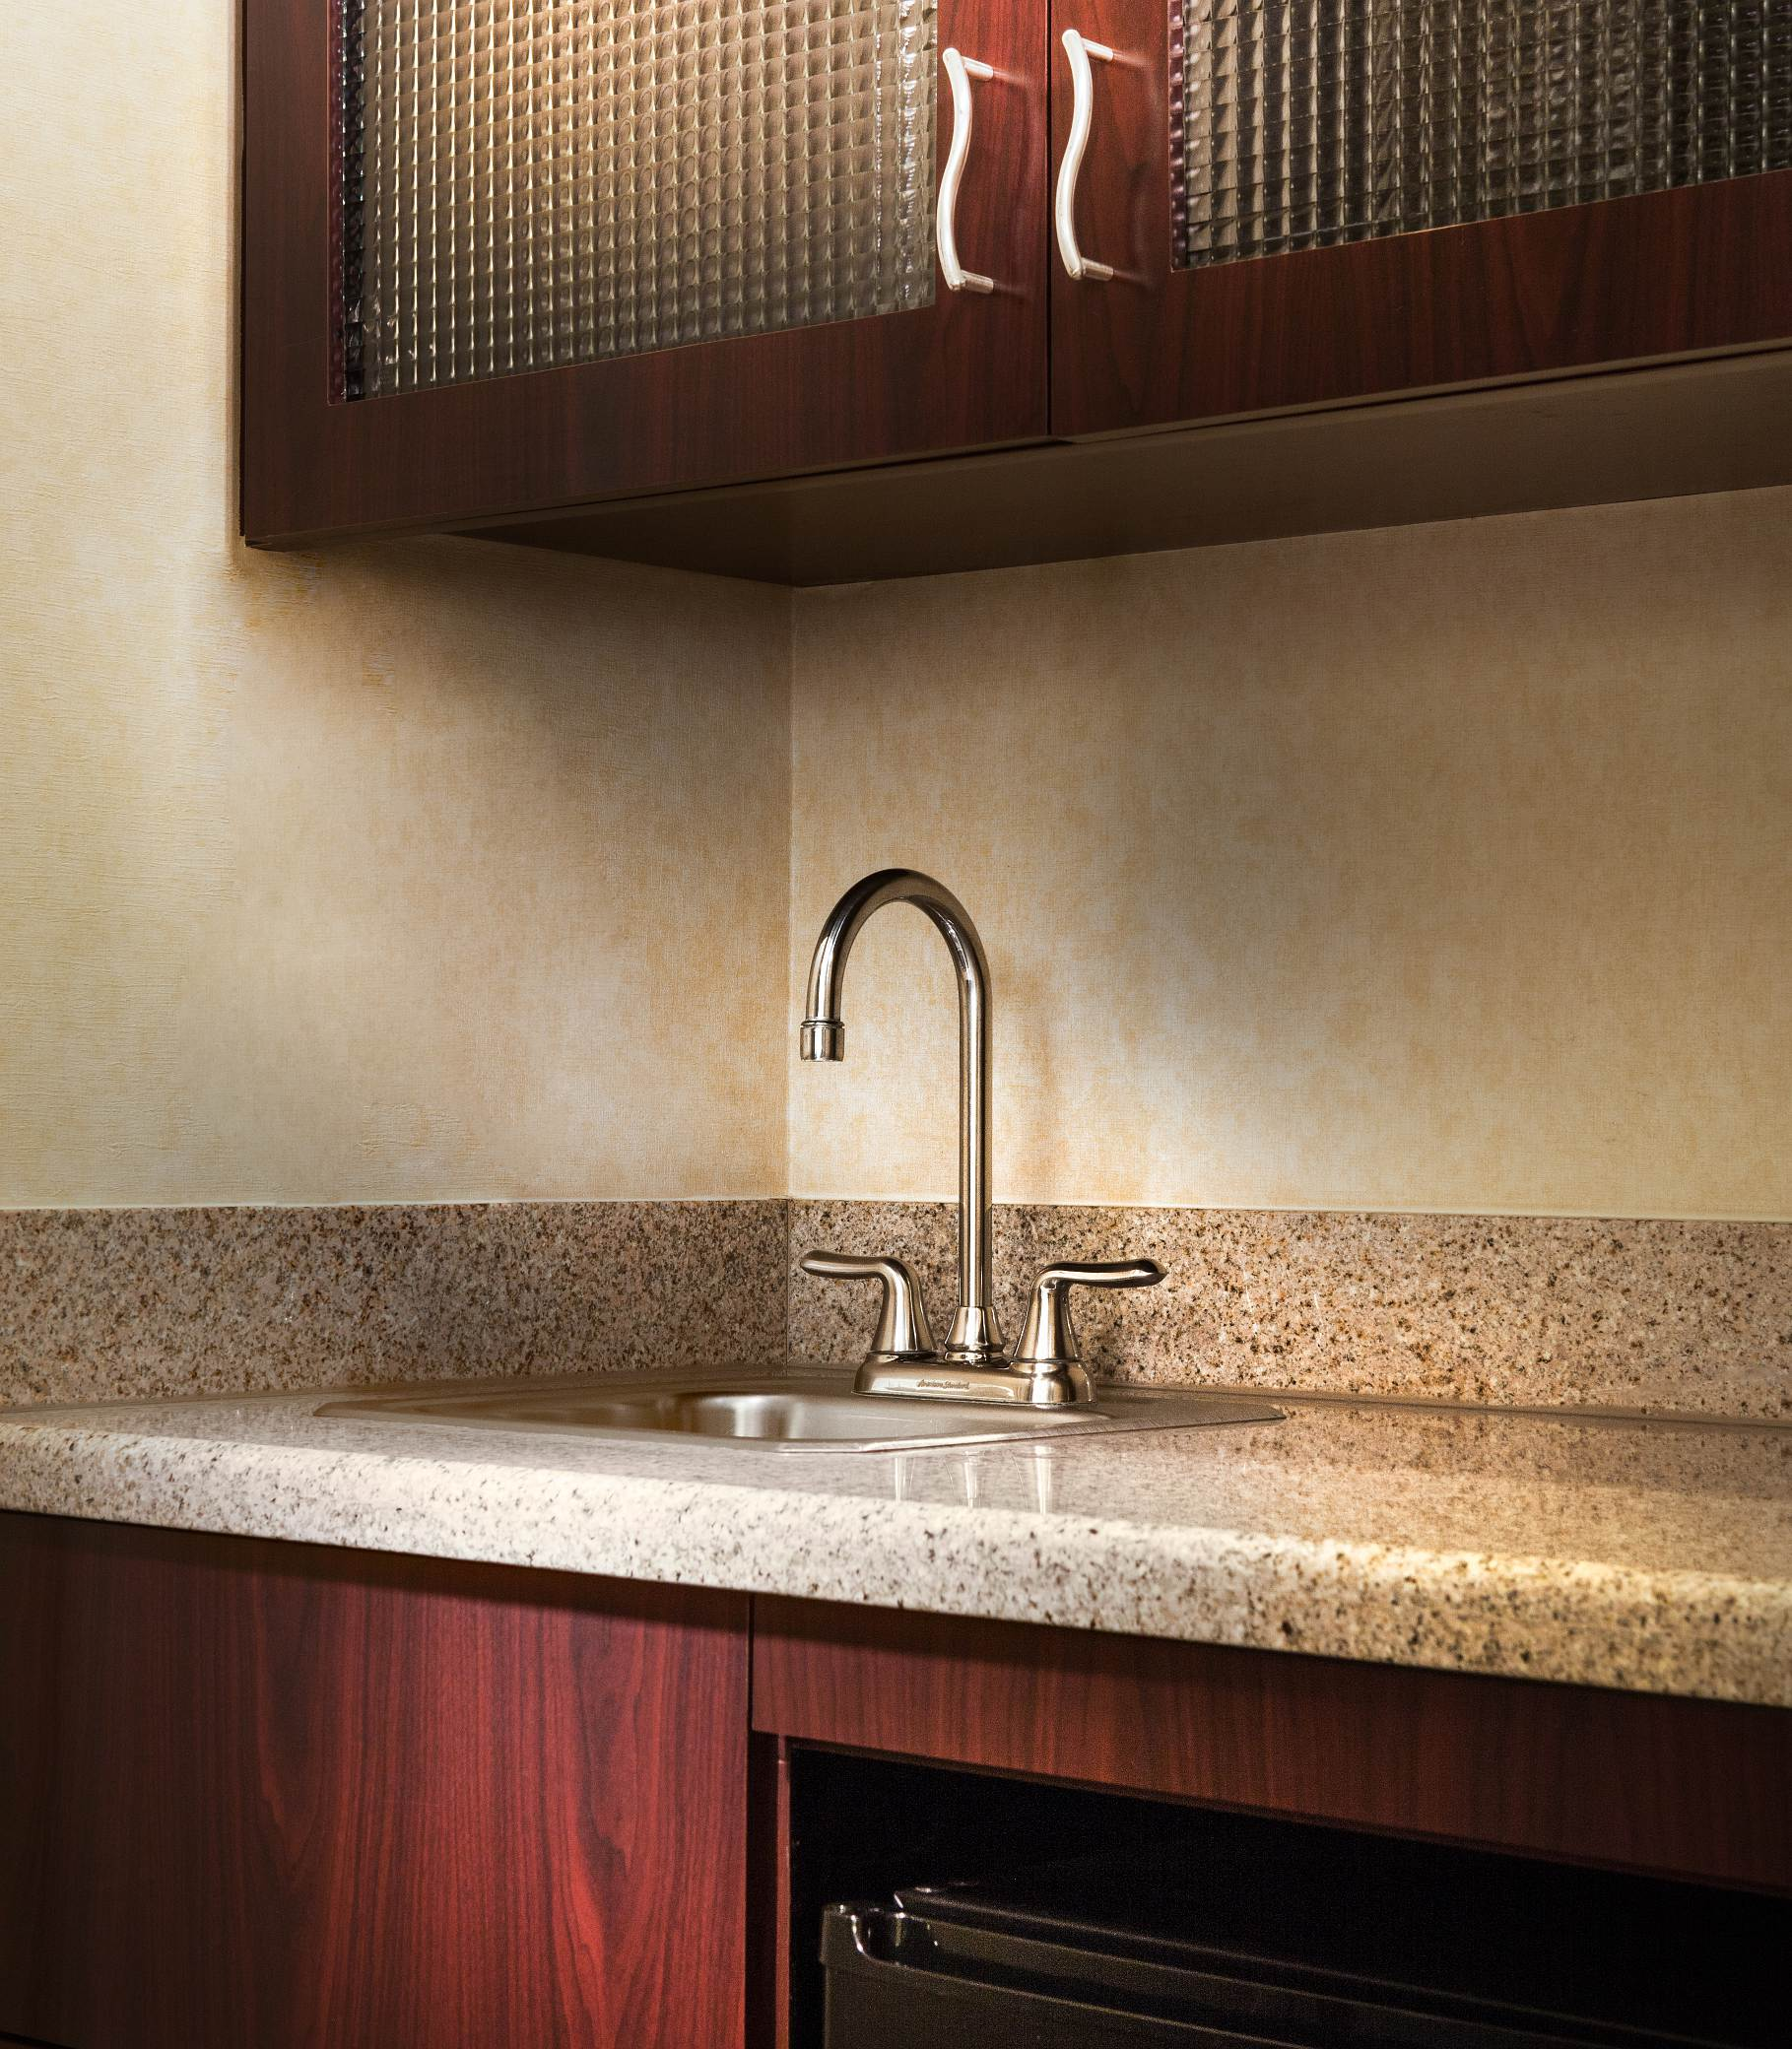 SpringHill Suites by Marriott Dallas DFW Airport North/Grapevine image 3